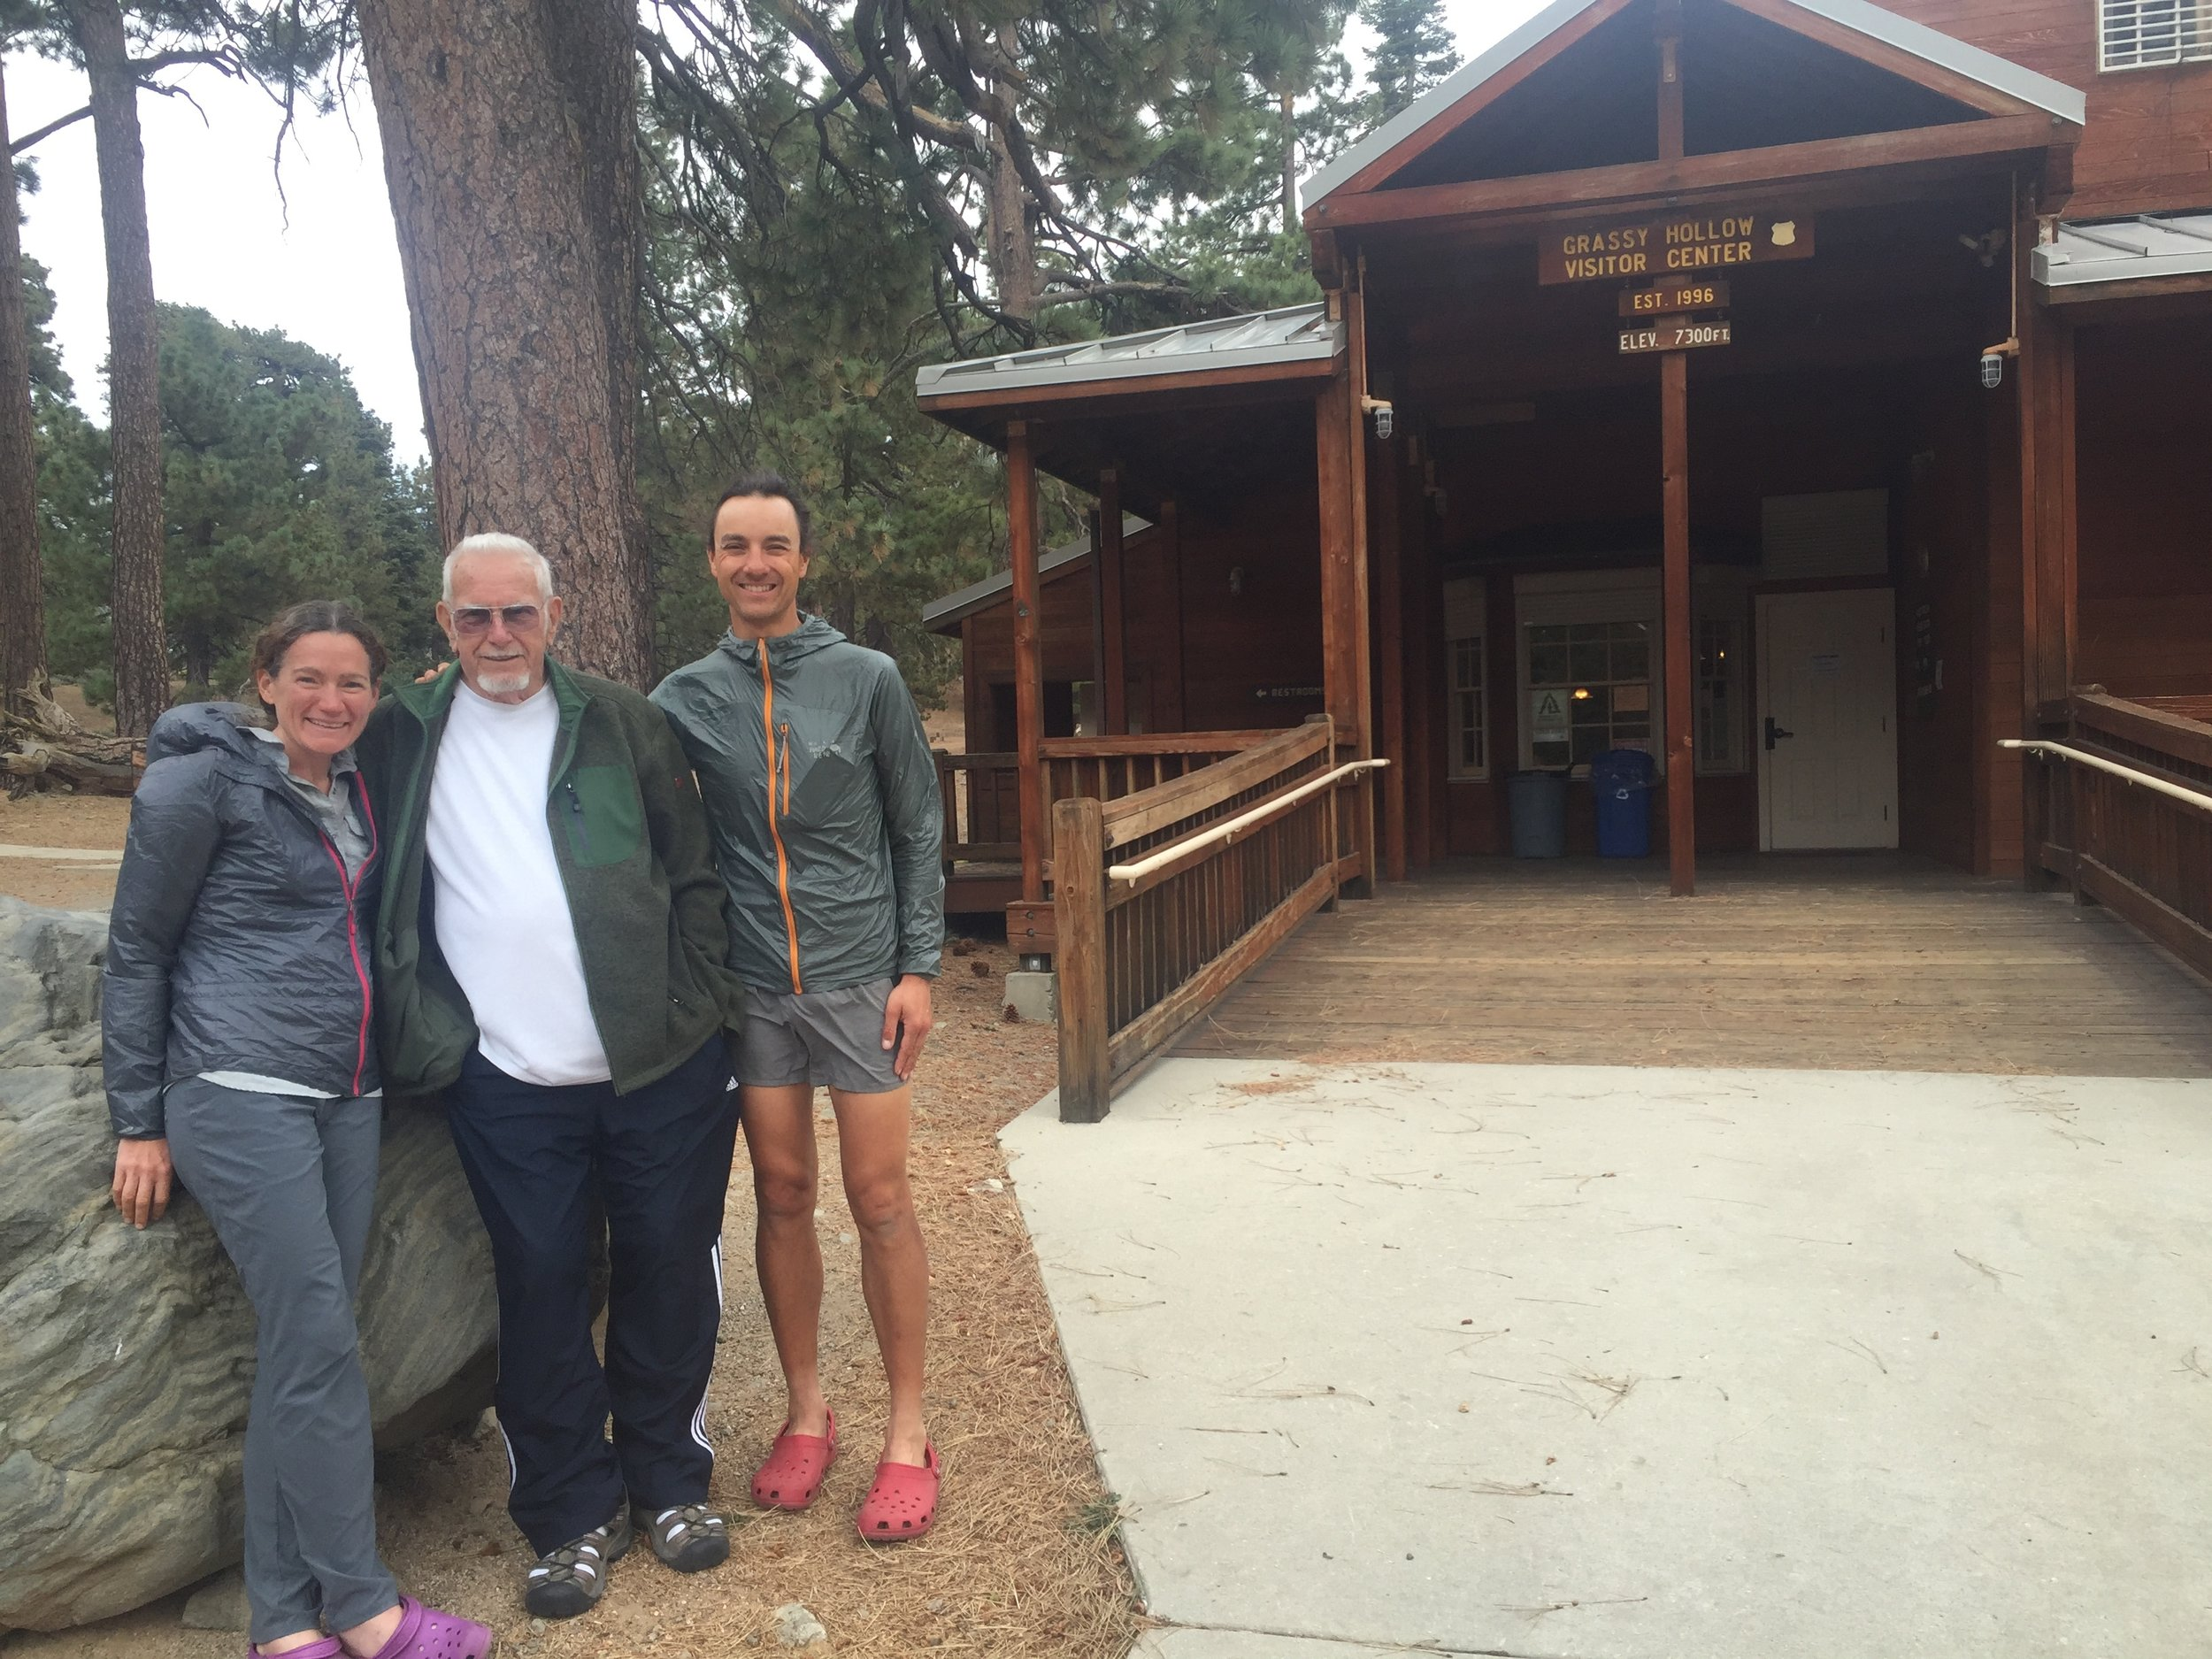 Huckleberry, Clark, and me in front of the Grassy Hollow Visitor's Center.